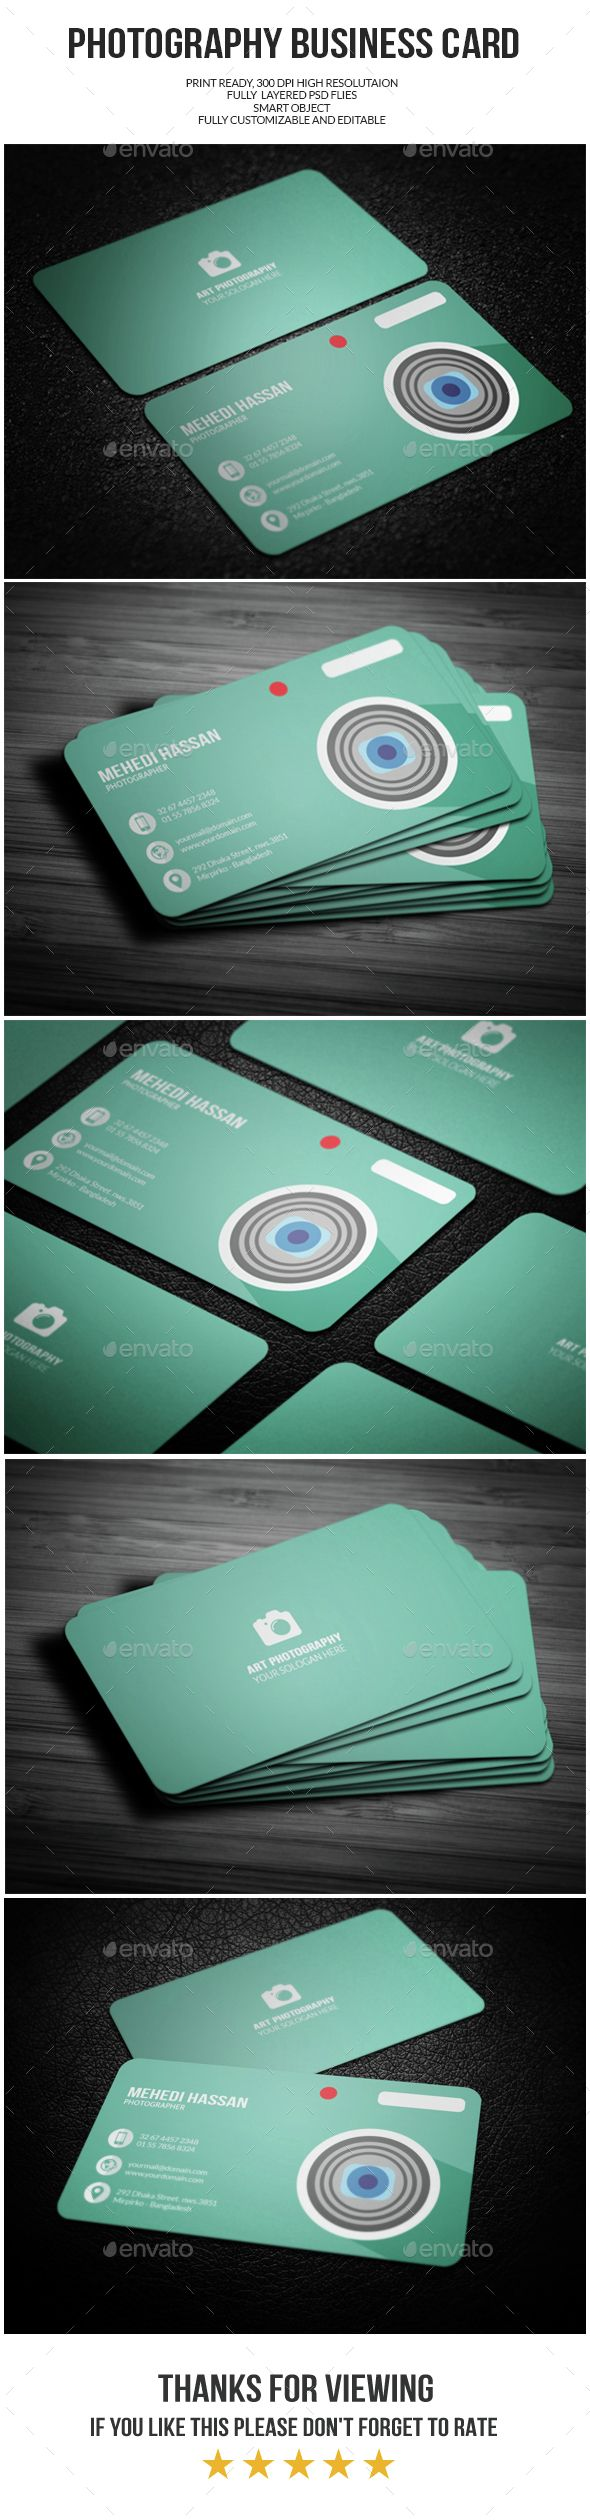 Photography Business Card Template PSD #design Download: http://graphicriver.net/item/photography-business-card/14484000?ref=ksioks